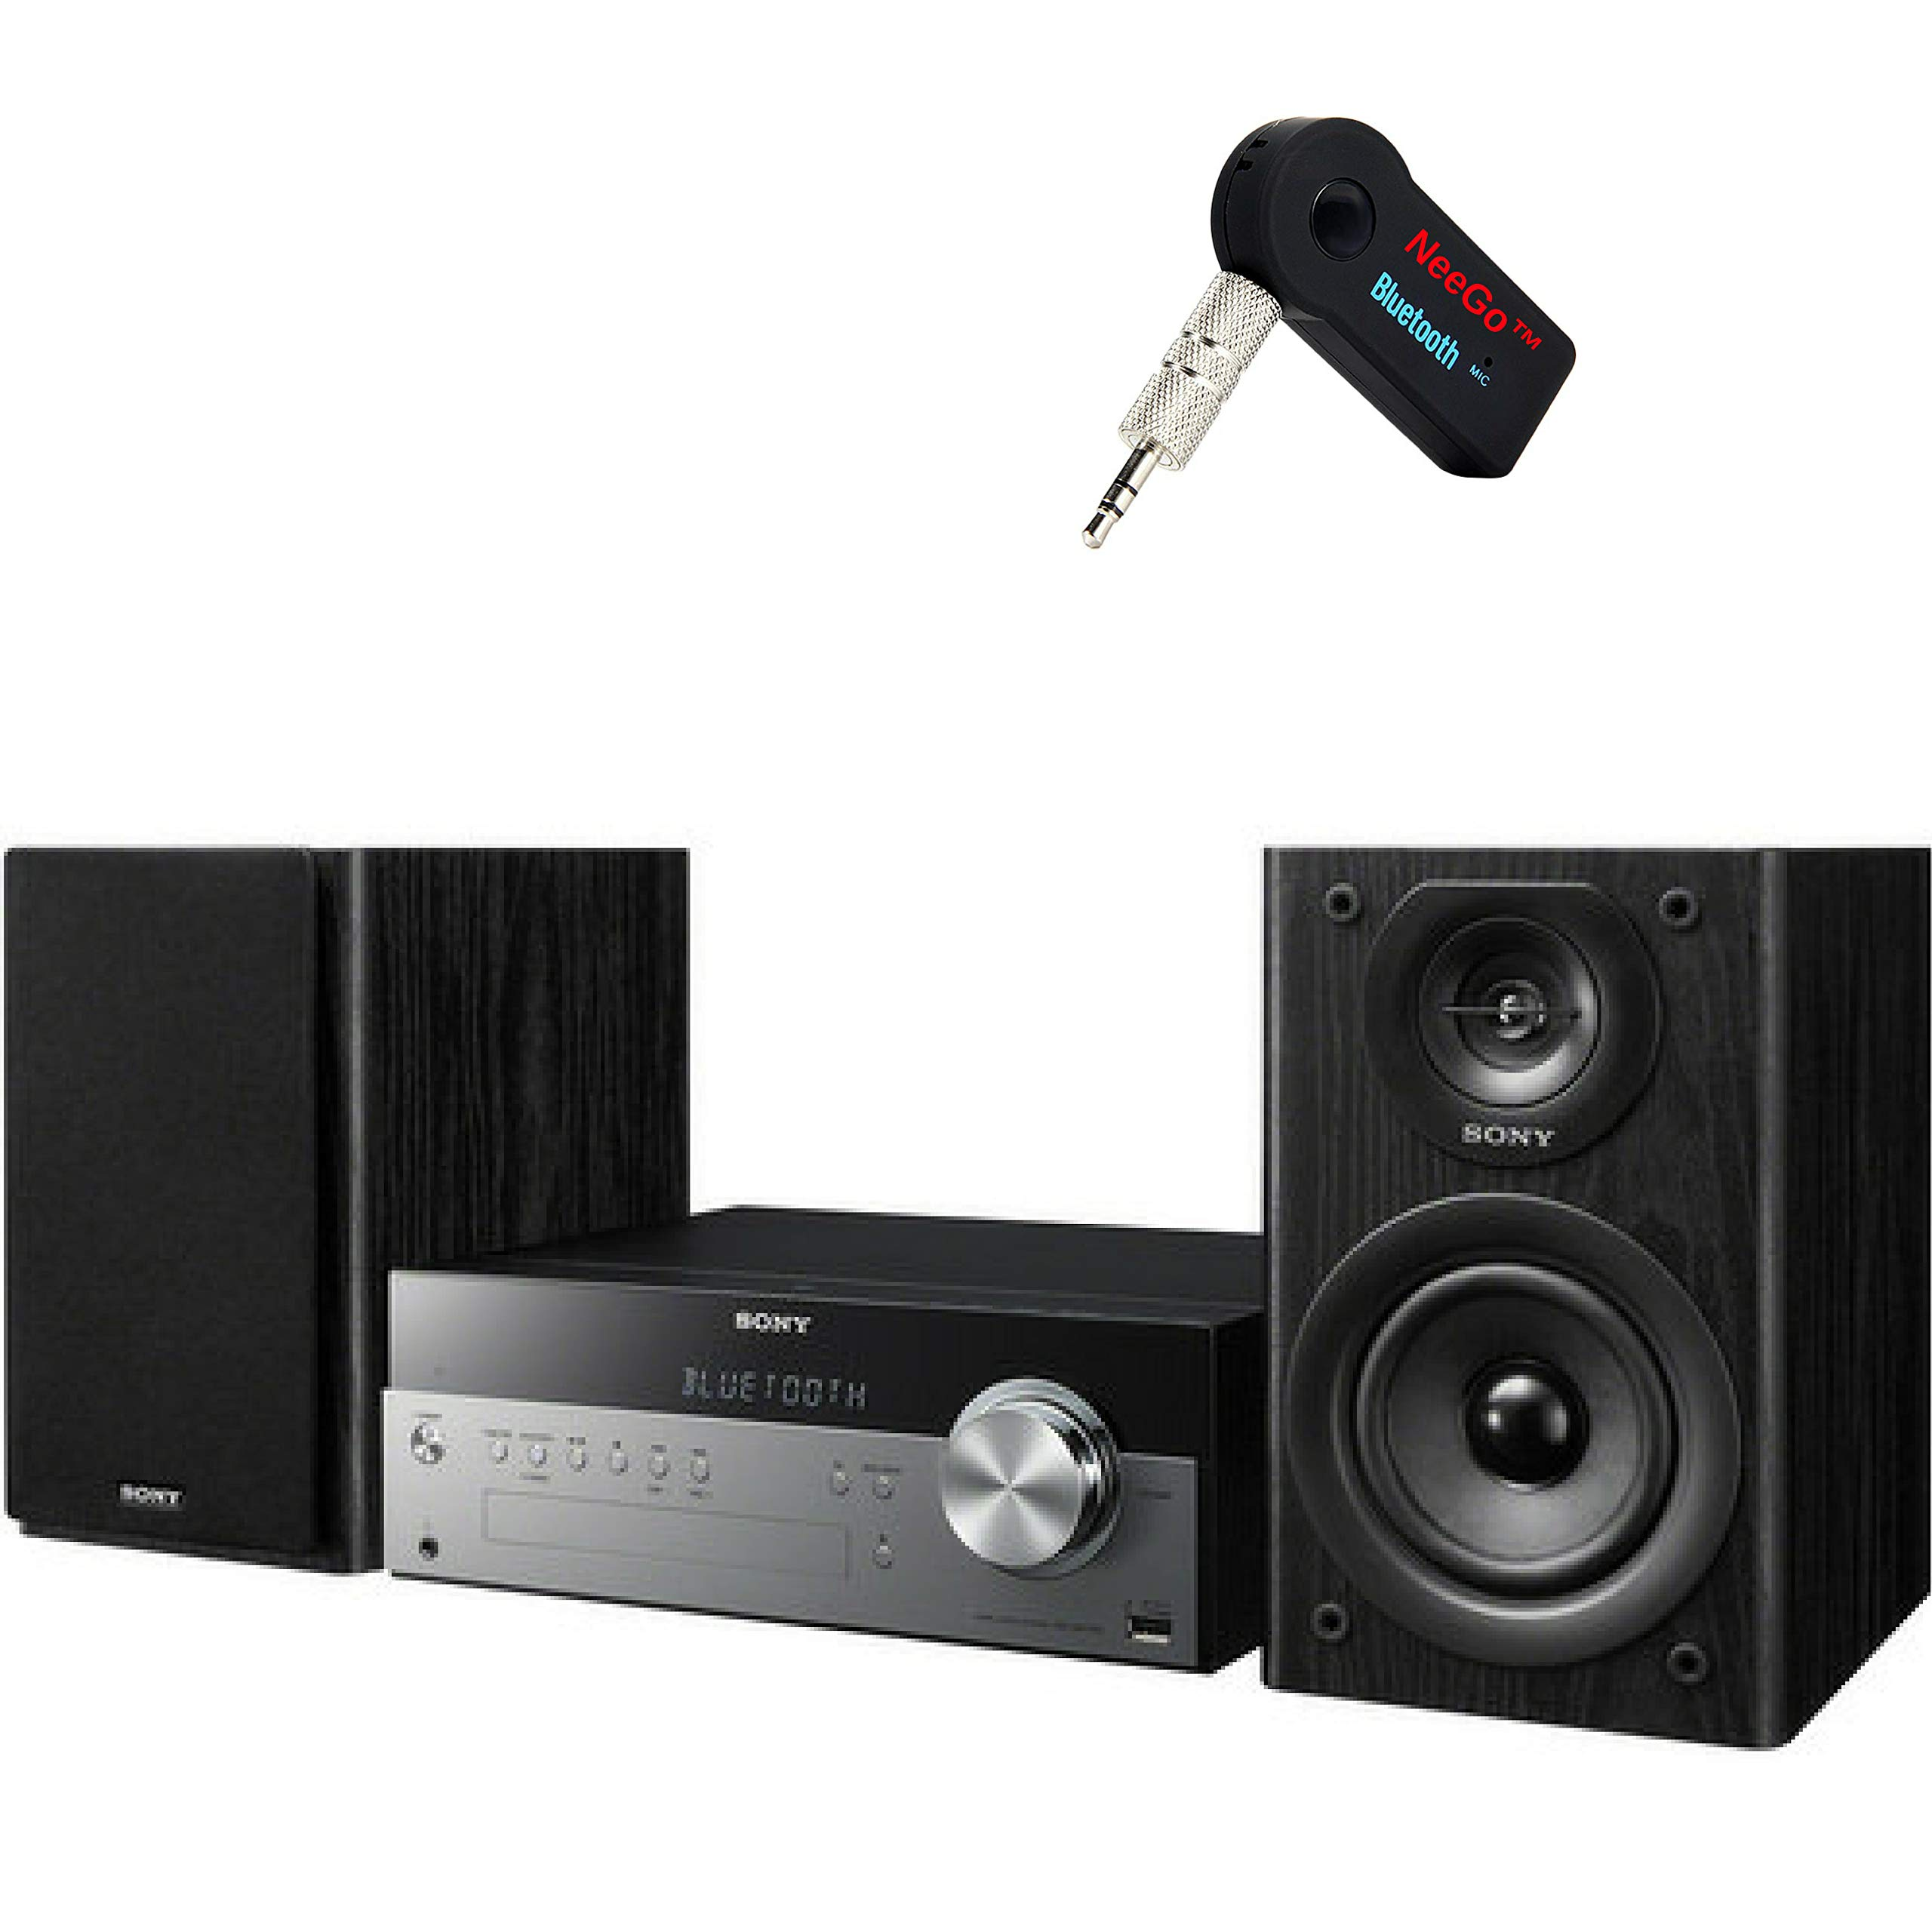 Sony Bluetooth Micro Music System Bundle – [2] Piece Set Includes Micro Hi-fi Shelf System with Single Disc Cd Player, Bluetooth, USB Input, 2-Way, Bass Reflex Speakers NeeGo Bluetooth Receiver; by NEEGO (Image #6)